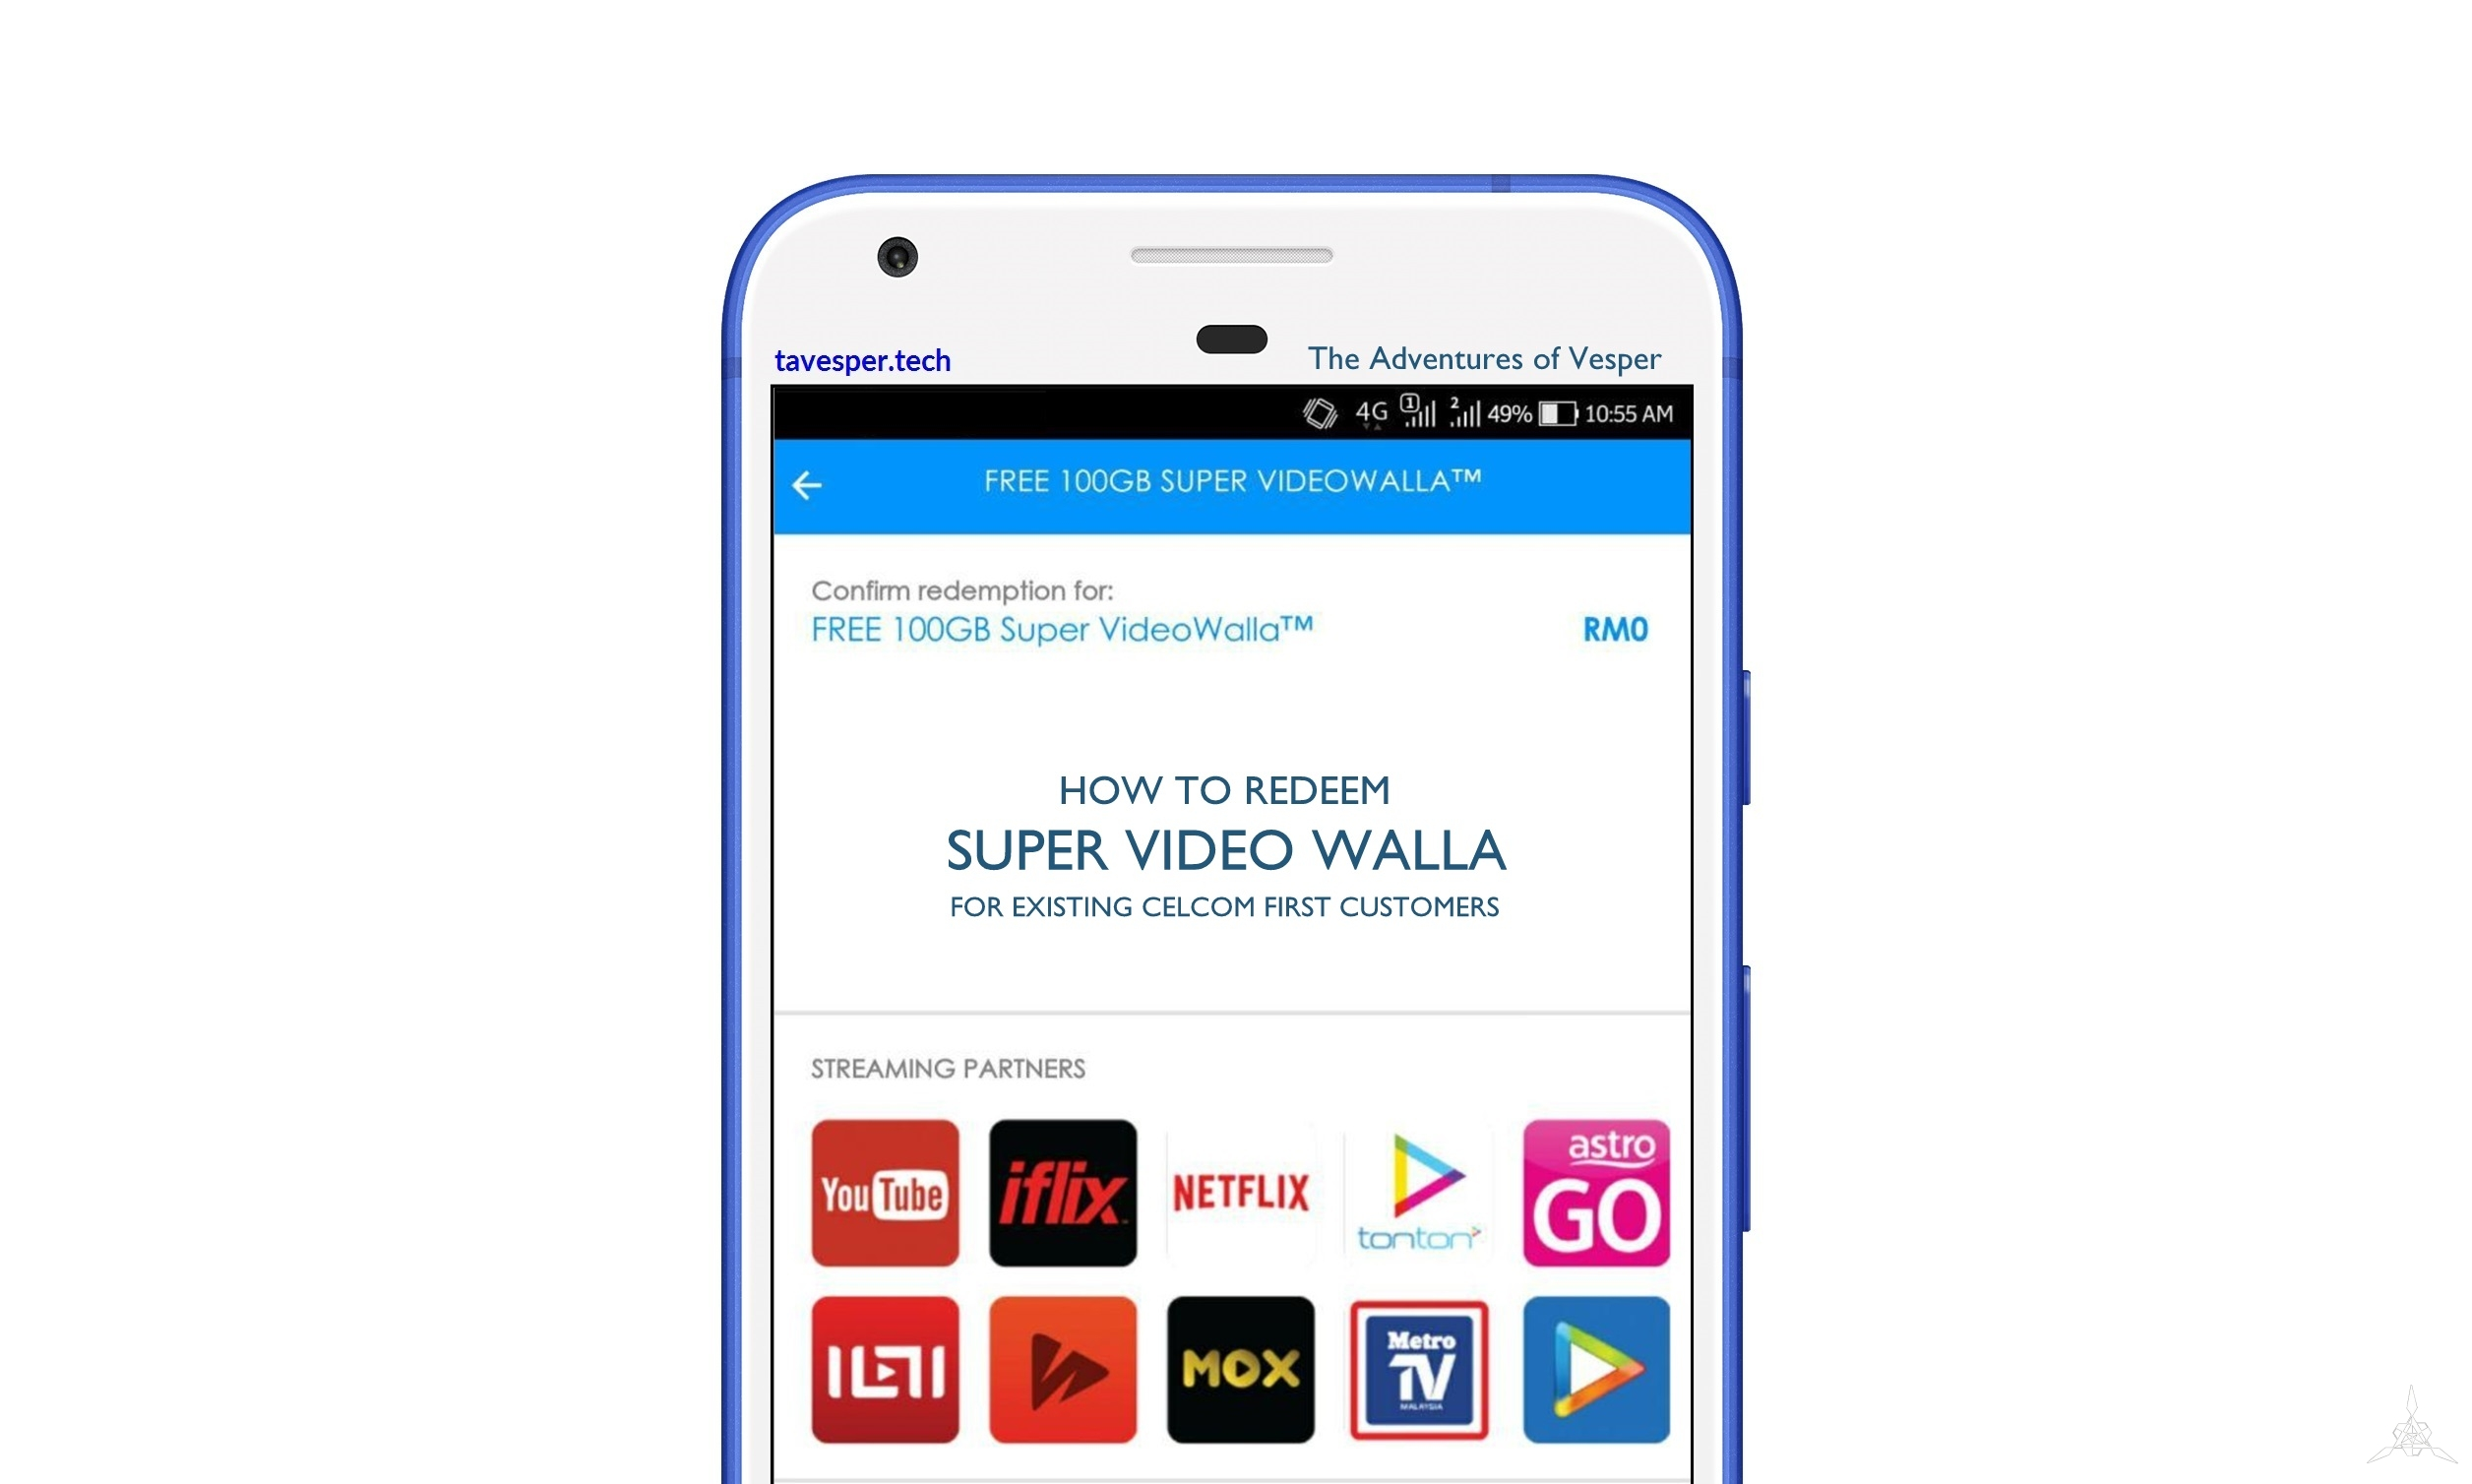 How to Redeem Celcom FIRST Super Video Walla for Existing Users